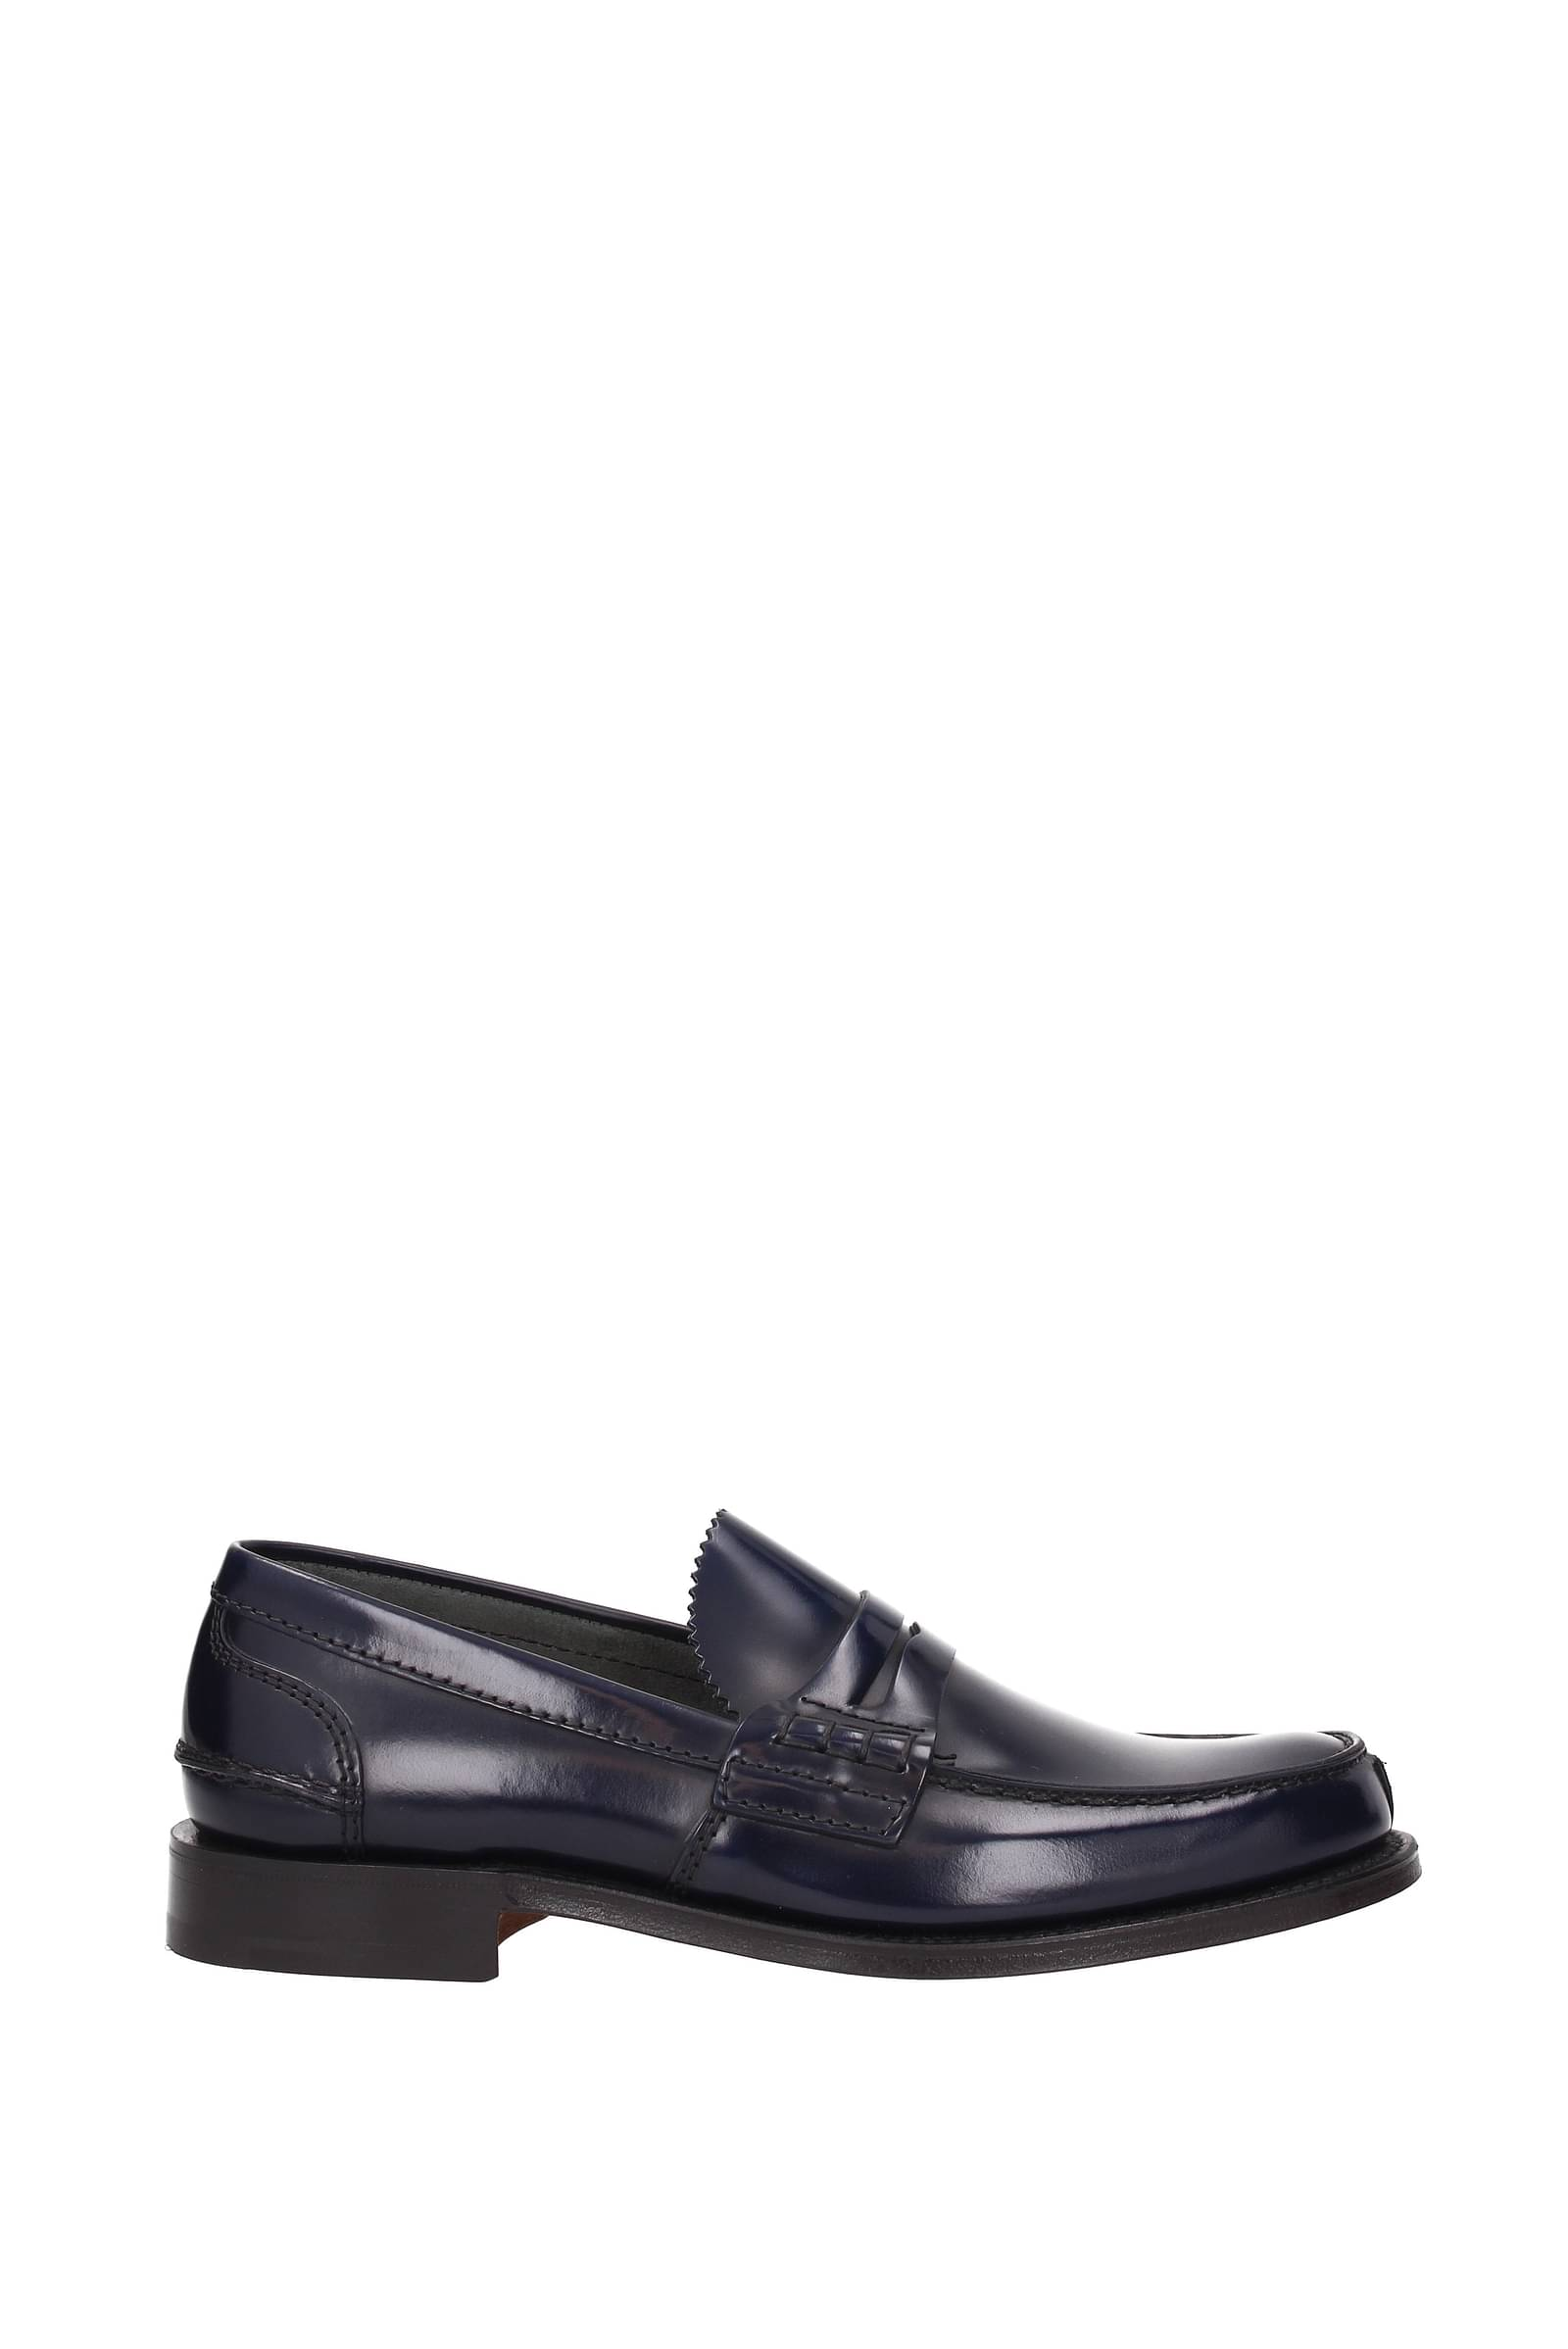 Loafers-Church-039-s-Man-Leather-TUNBRIDGE